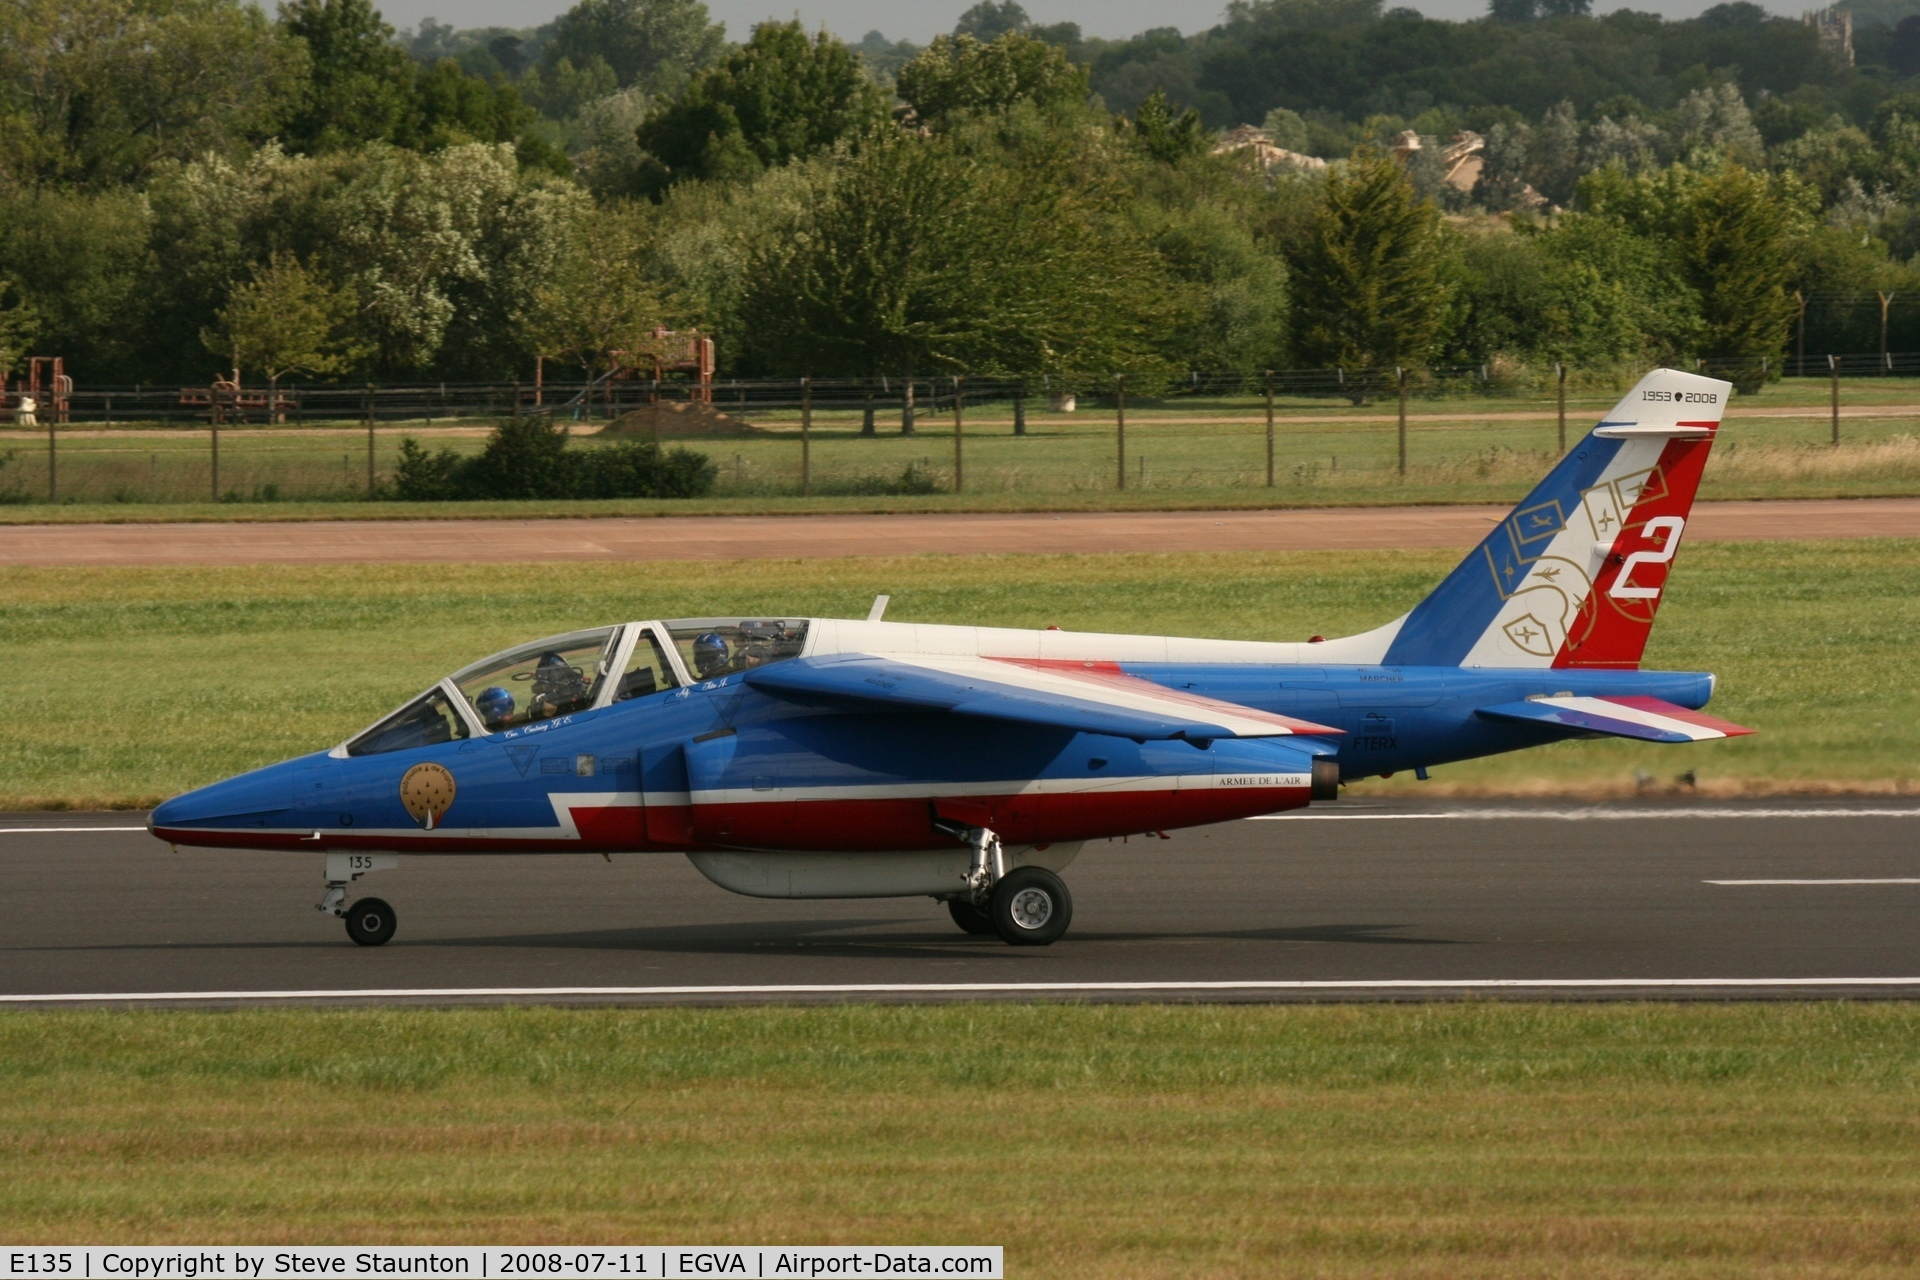 E135, Dassault-Dornier Alpha Jet E C/N E135, Taken at the Royal International Air Tattoo 2008 during arrivals and departures (show days cancelled due to bad weather)